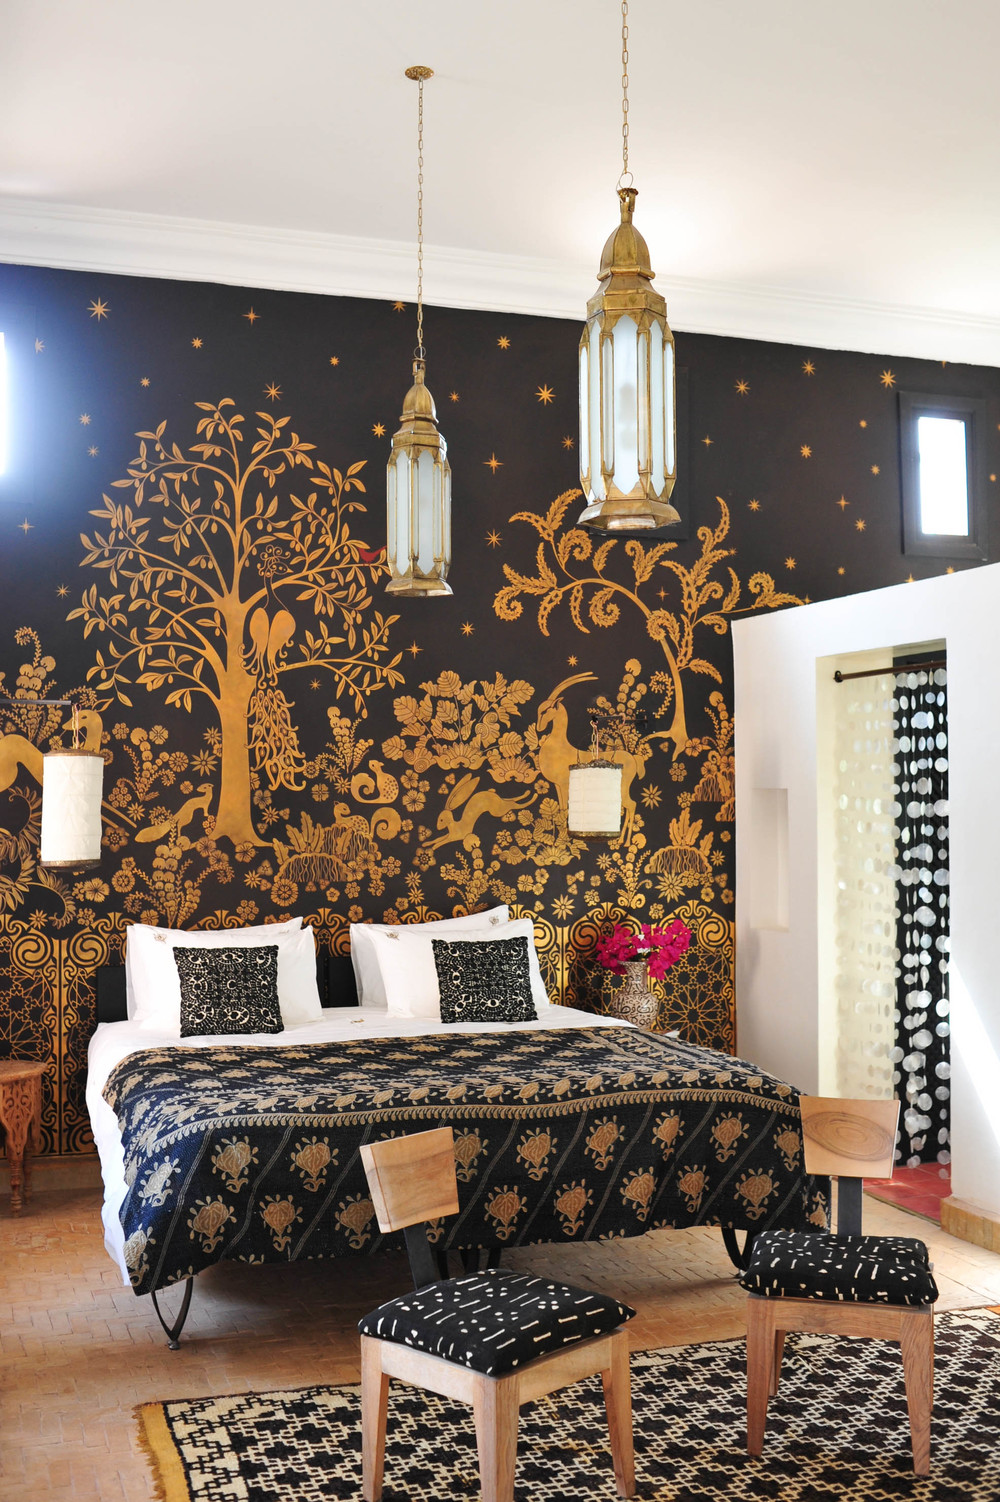 Peacock Pavilions boutique hotel in Marrakech, Morocco – Design by M. Montague - Golden Gazelle, Atlas Pavilion